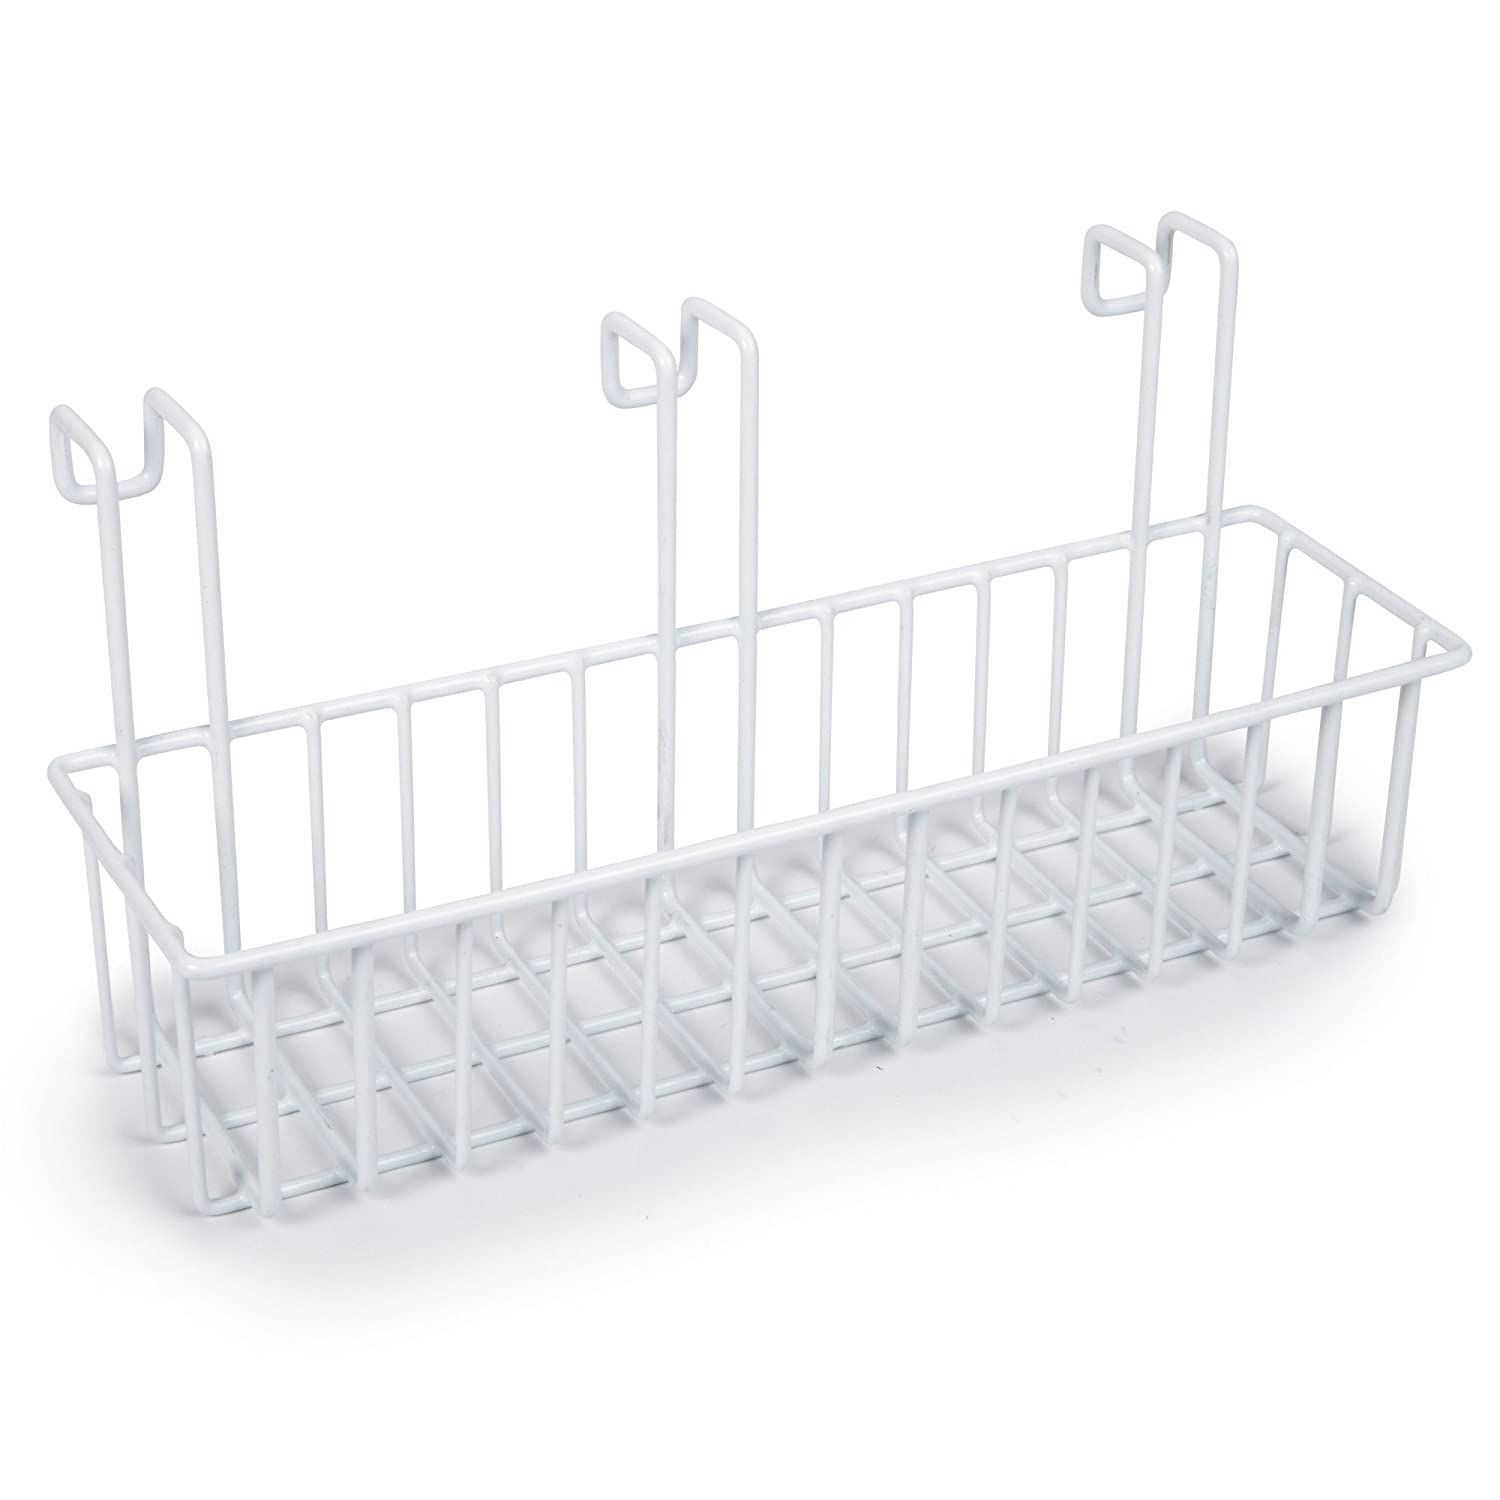 Master Equipment TP88934 Shampoo Rack Durable, Versatile, and Convenient Tub Racks for Professional Pet Groomers